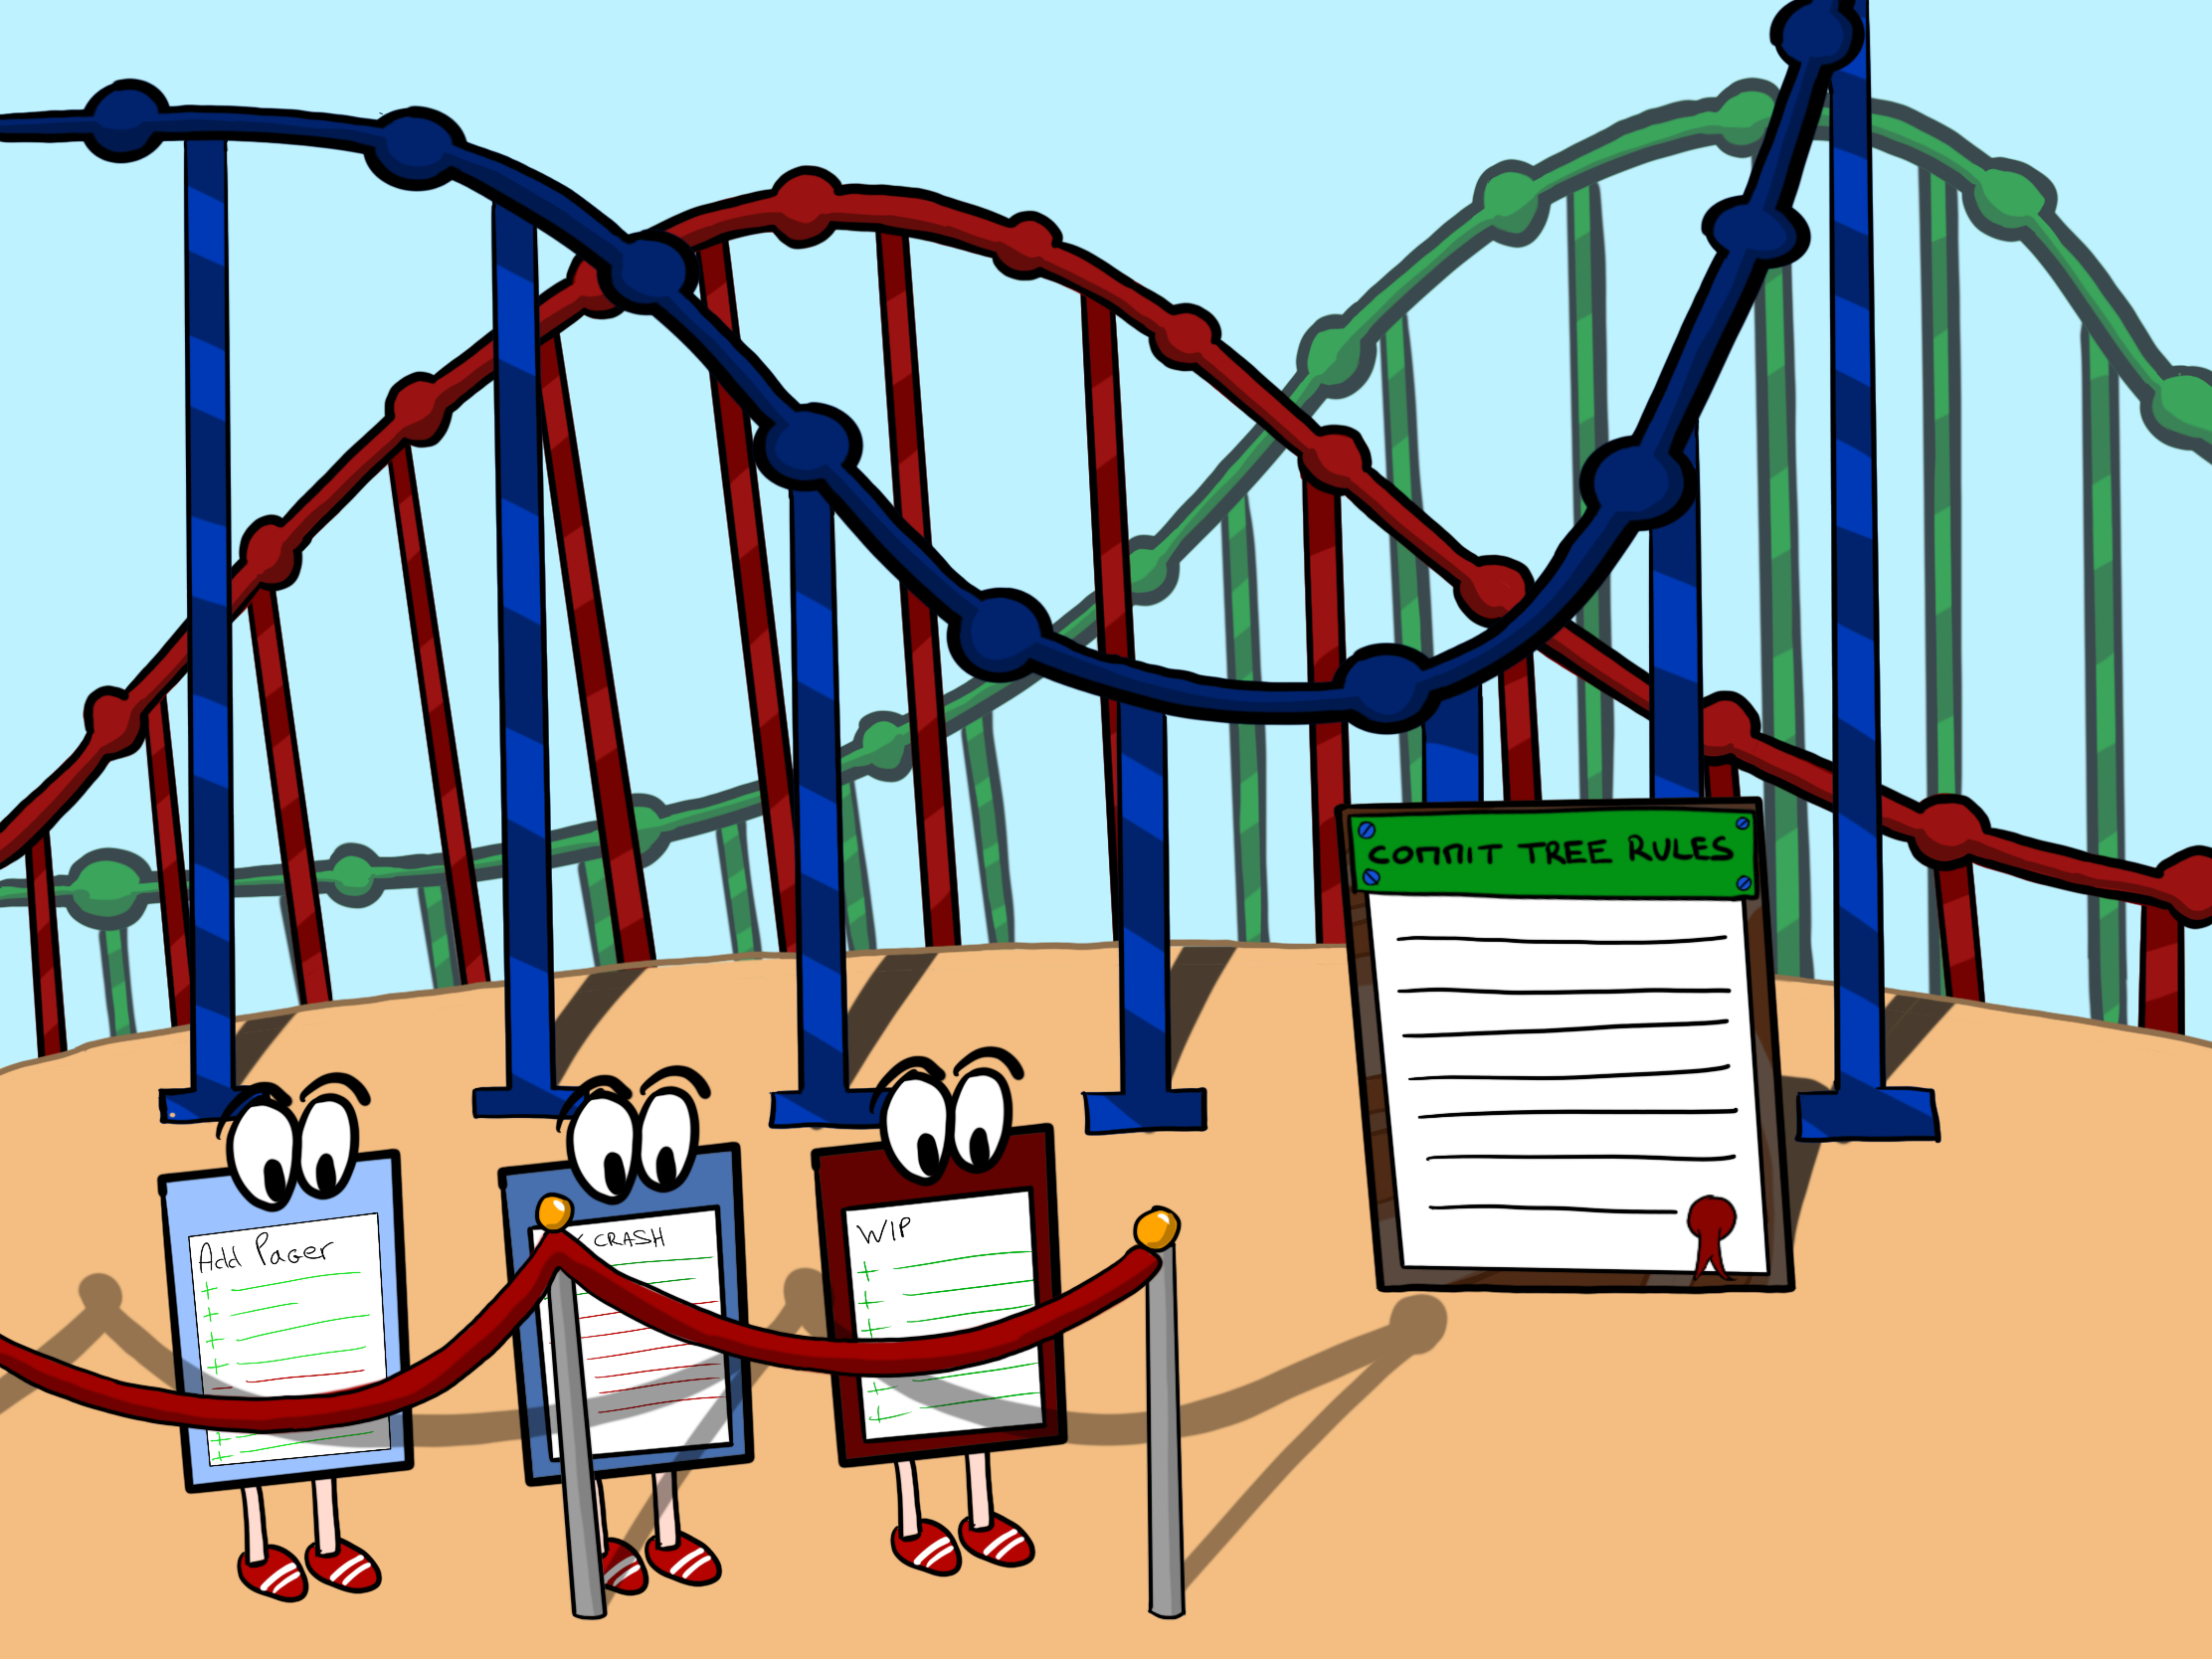 Git commits characters waiting in line to ride a roller coaster